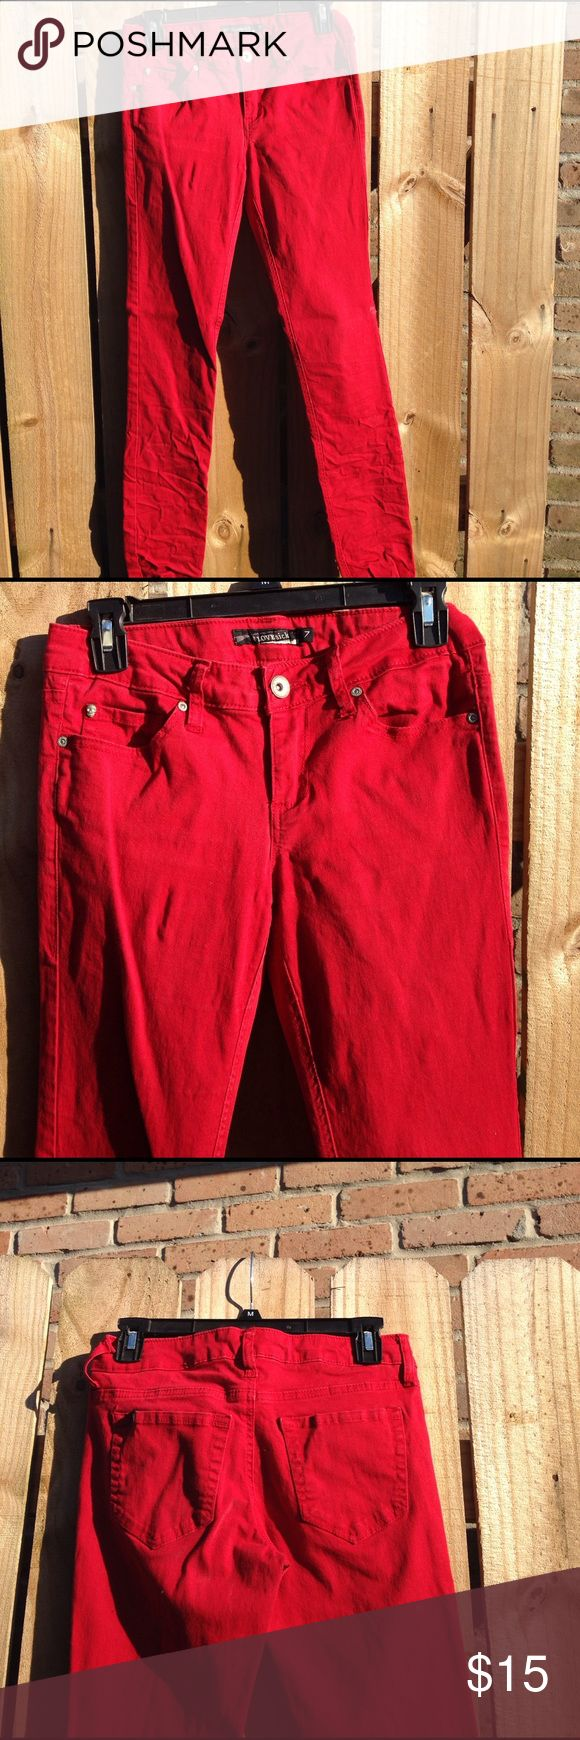 Blood red skinny jeans Blood red skinny jeans from hot topic Jeans Skinny